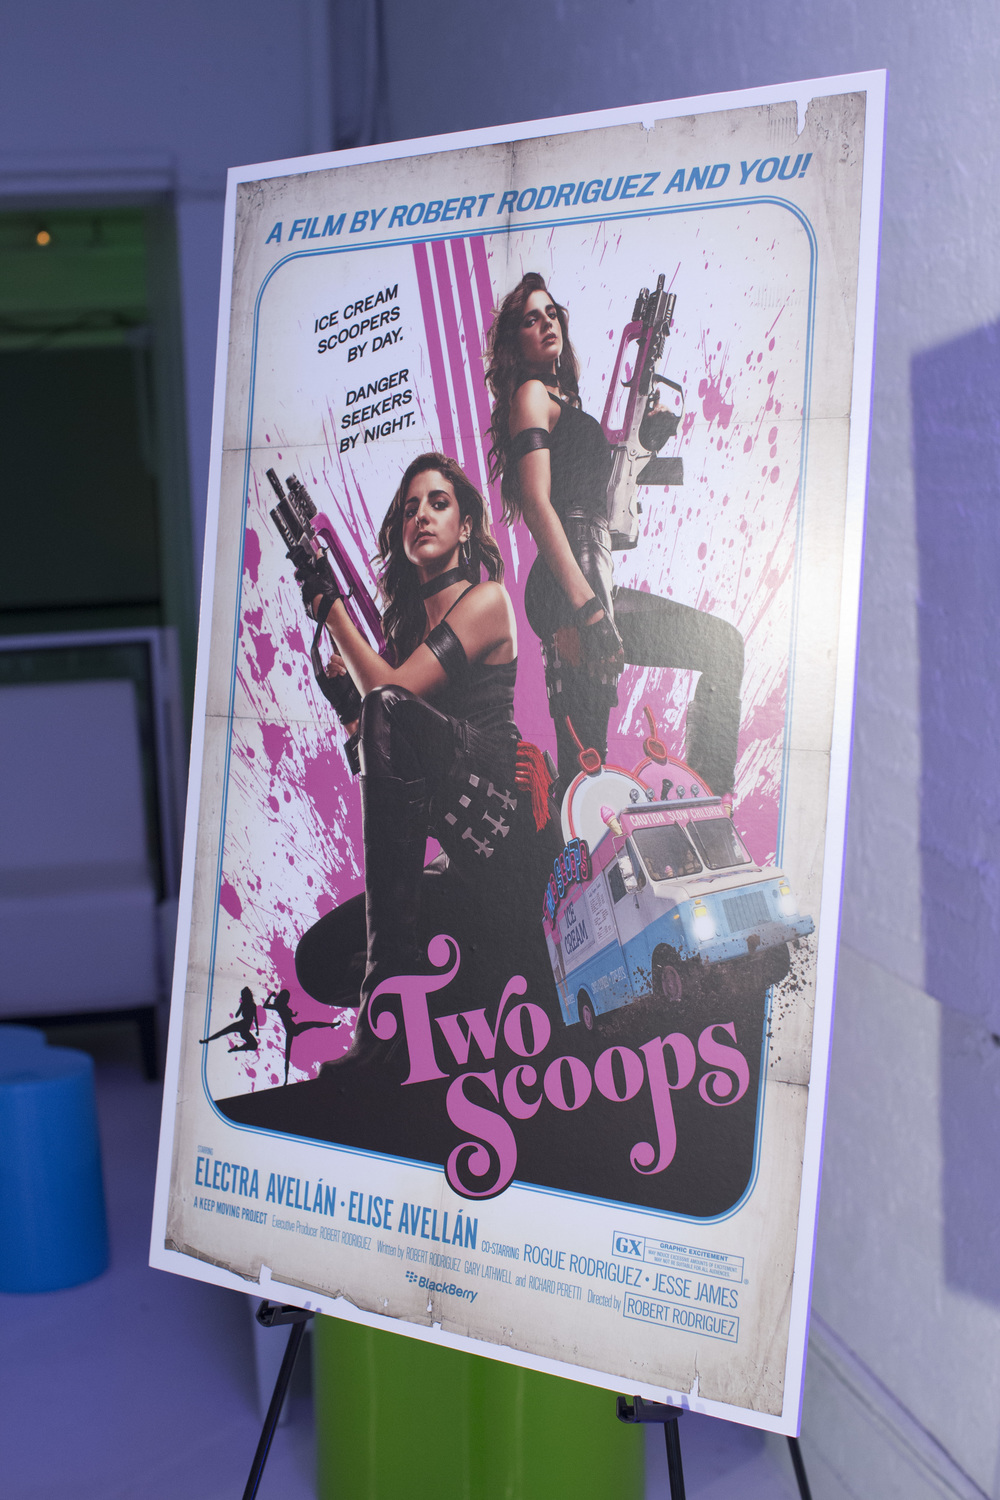 Two Scoops  film poster